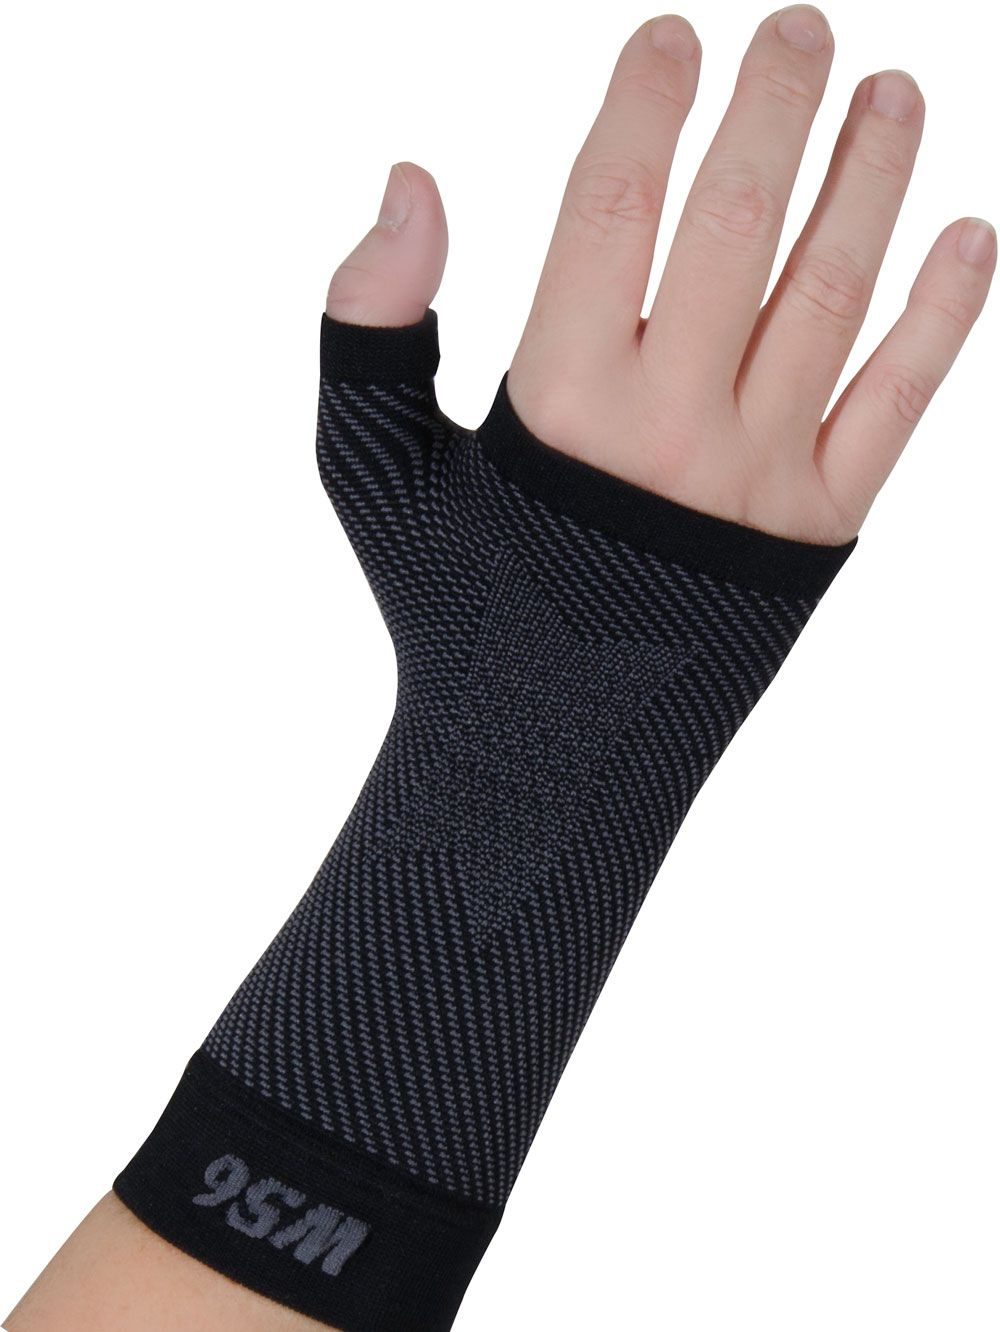 Driving gloves carpal tunnel - The Ws6 Wrist Sleeve Relieves Carpal Tunnel Pain Arthritis Pain Improves Circulation And Reduces